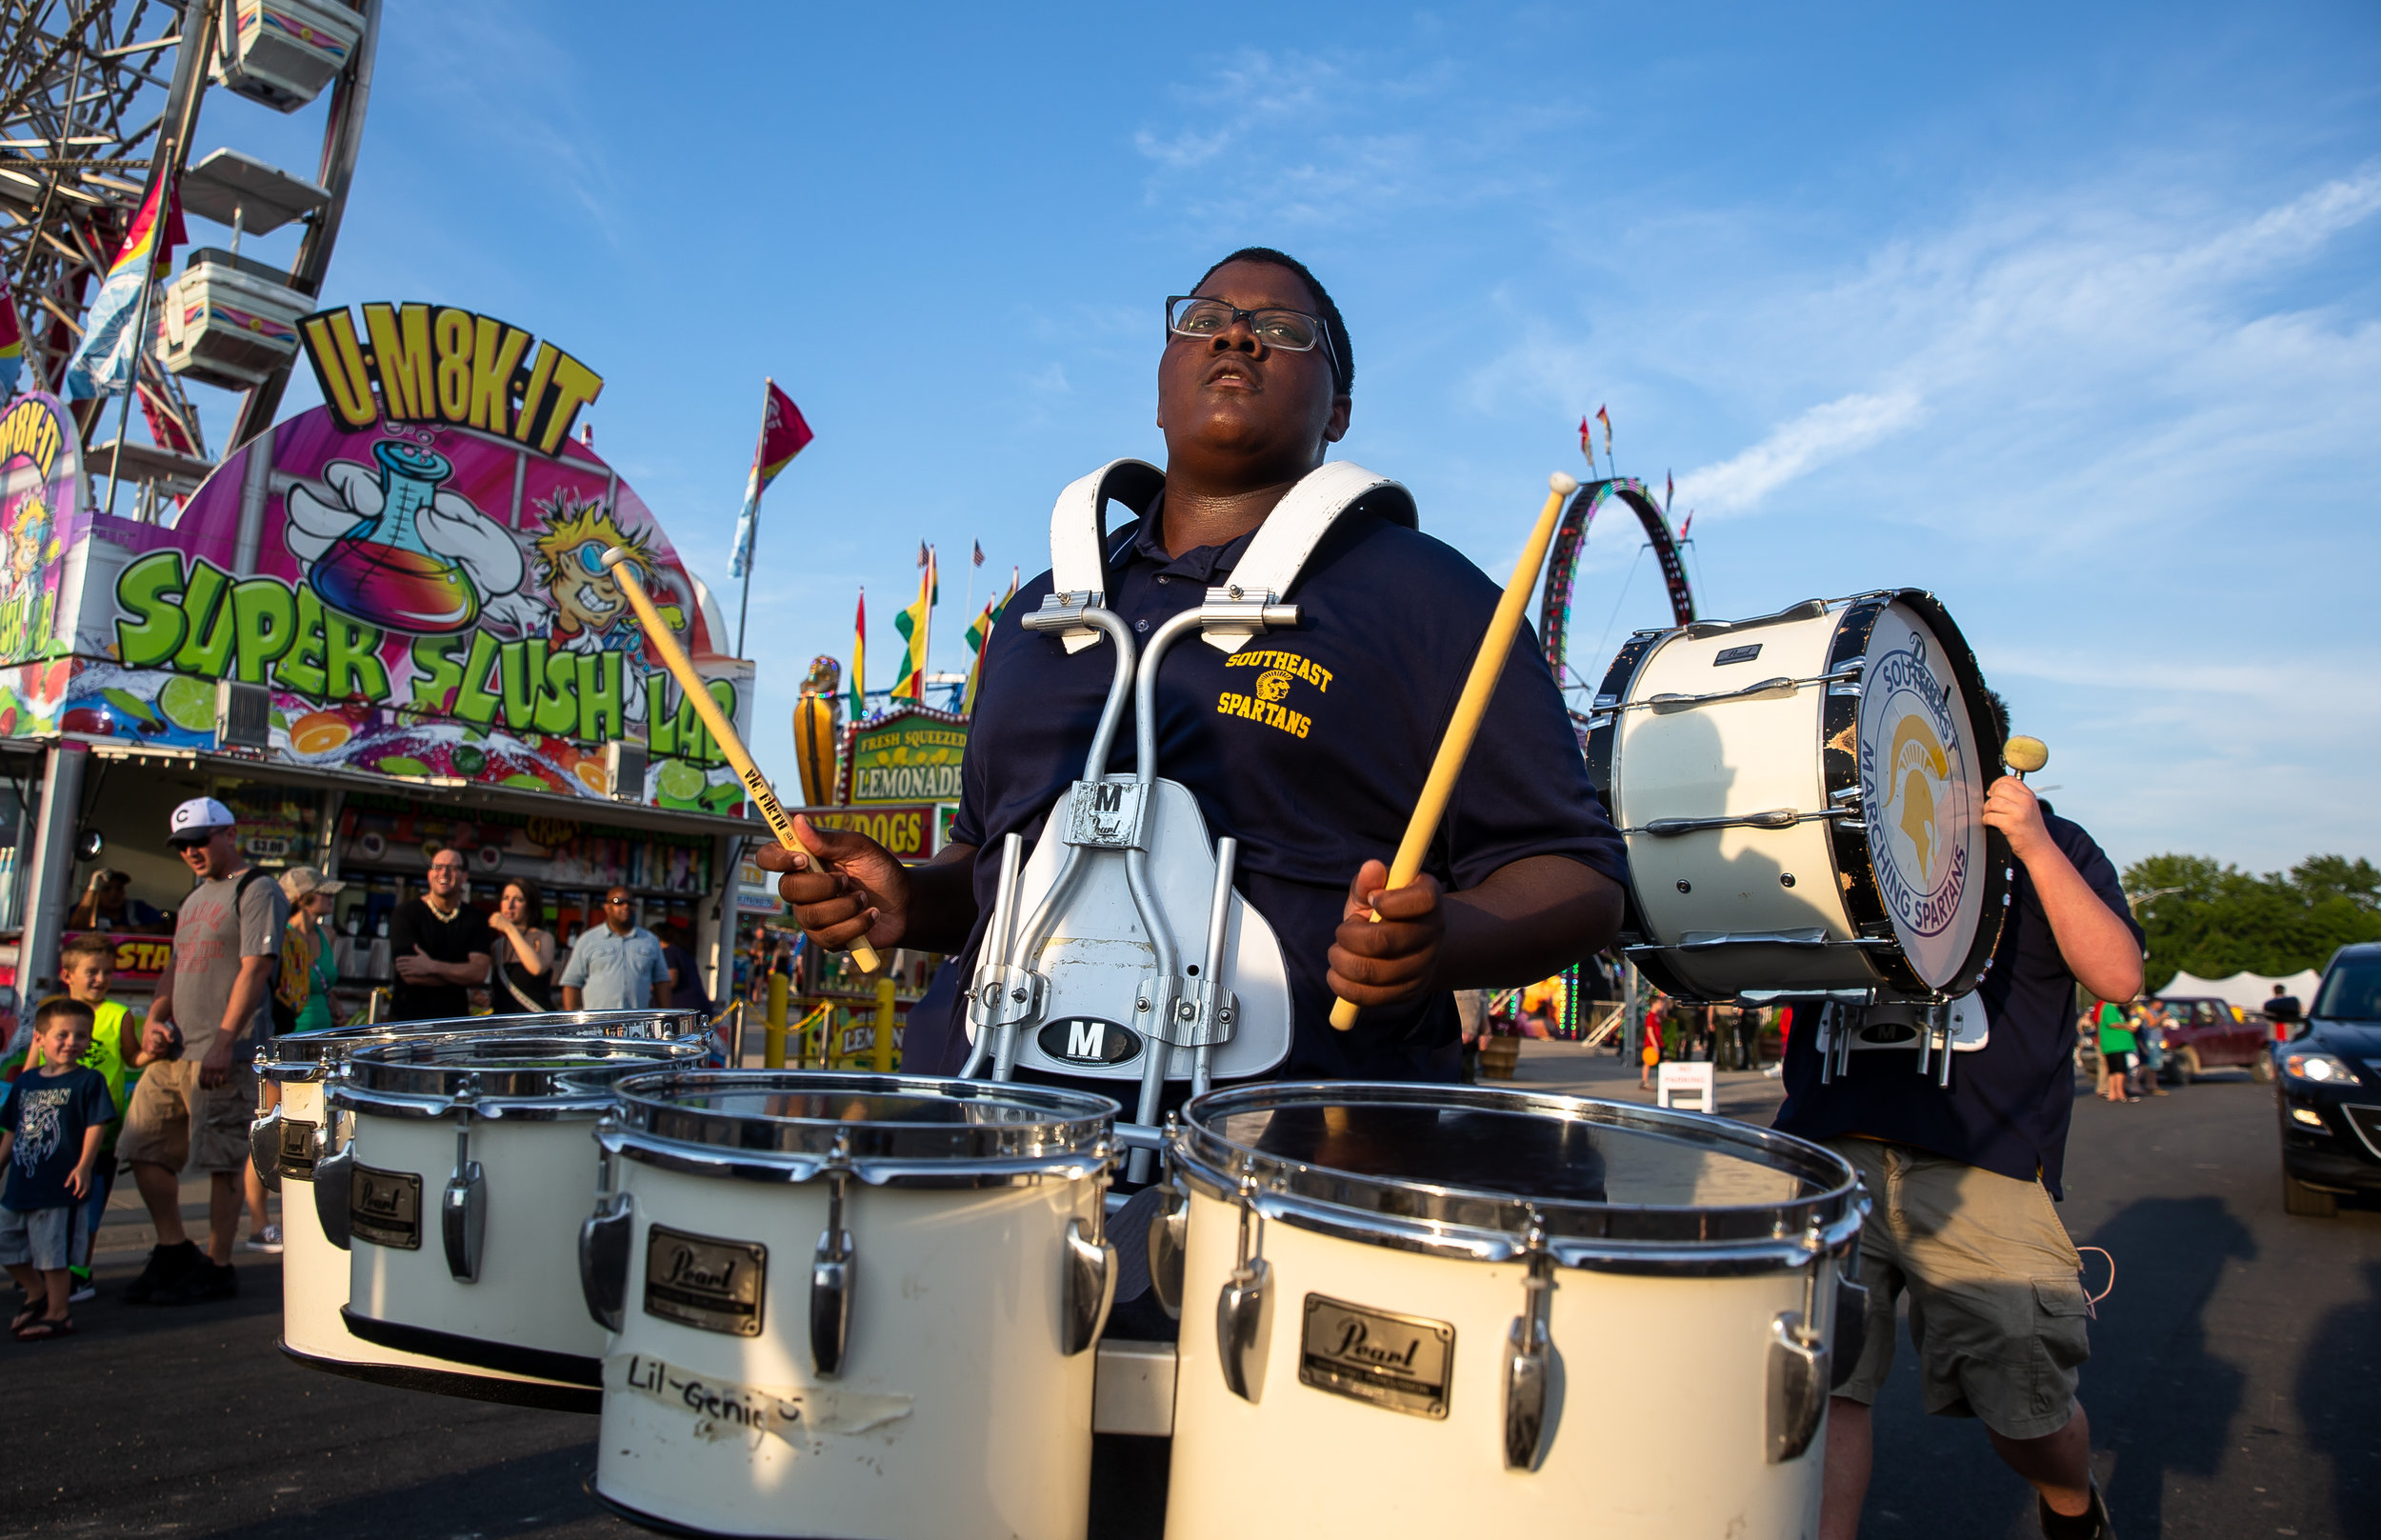 Members of the Southeast Marching Spartans perform as they march down Illinois Avenue during the Illinois State Fair Twilight Parade, Thursday, Aug. 9, 2018, in Springfield, Ill. [Justin L. Fowler/The State Journal-Register]